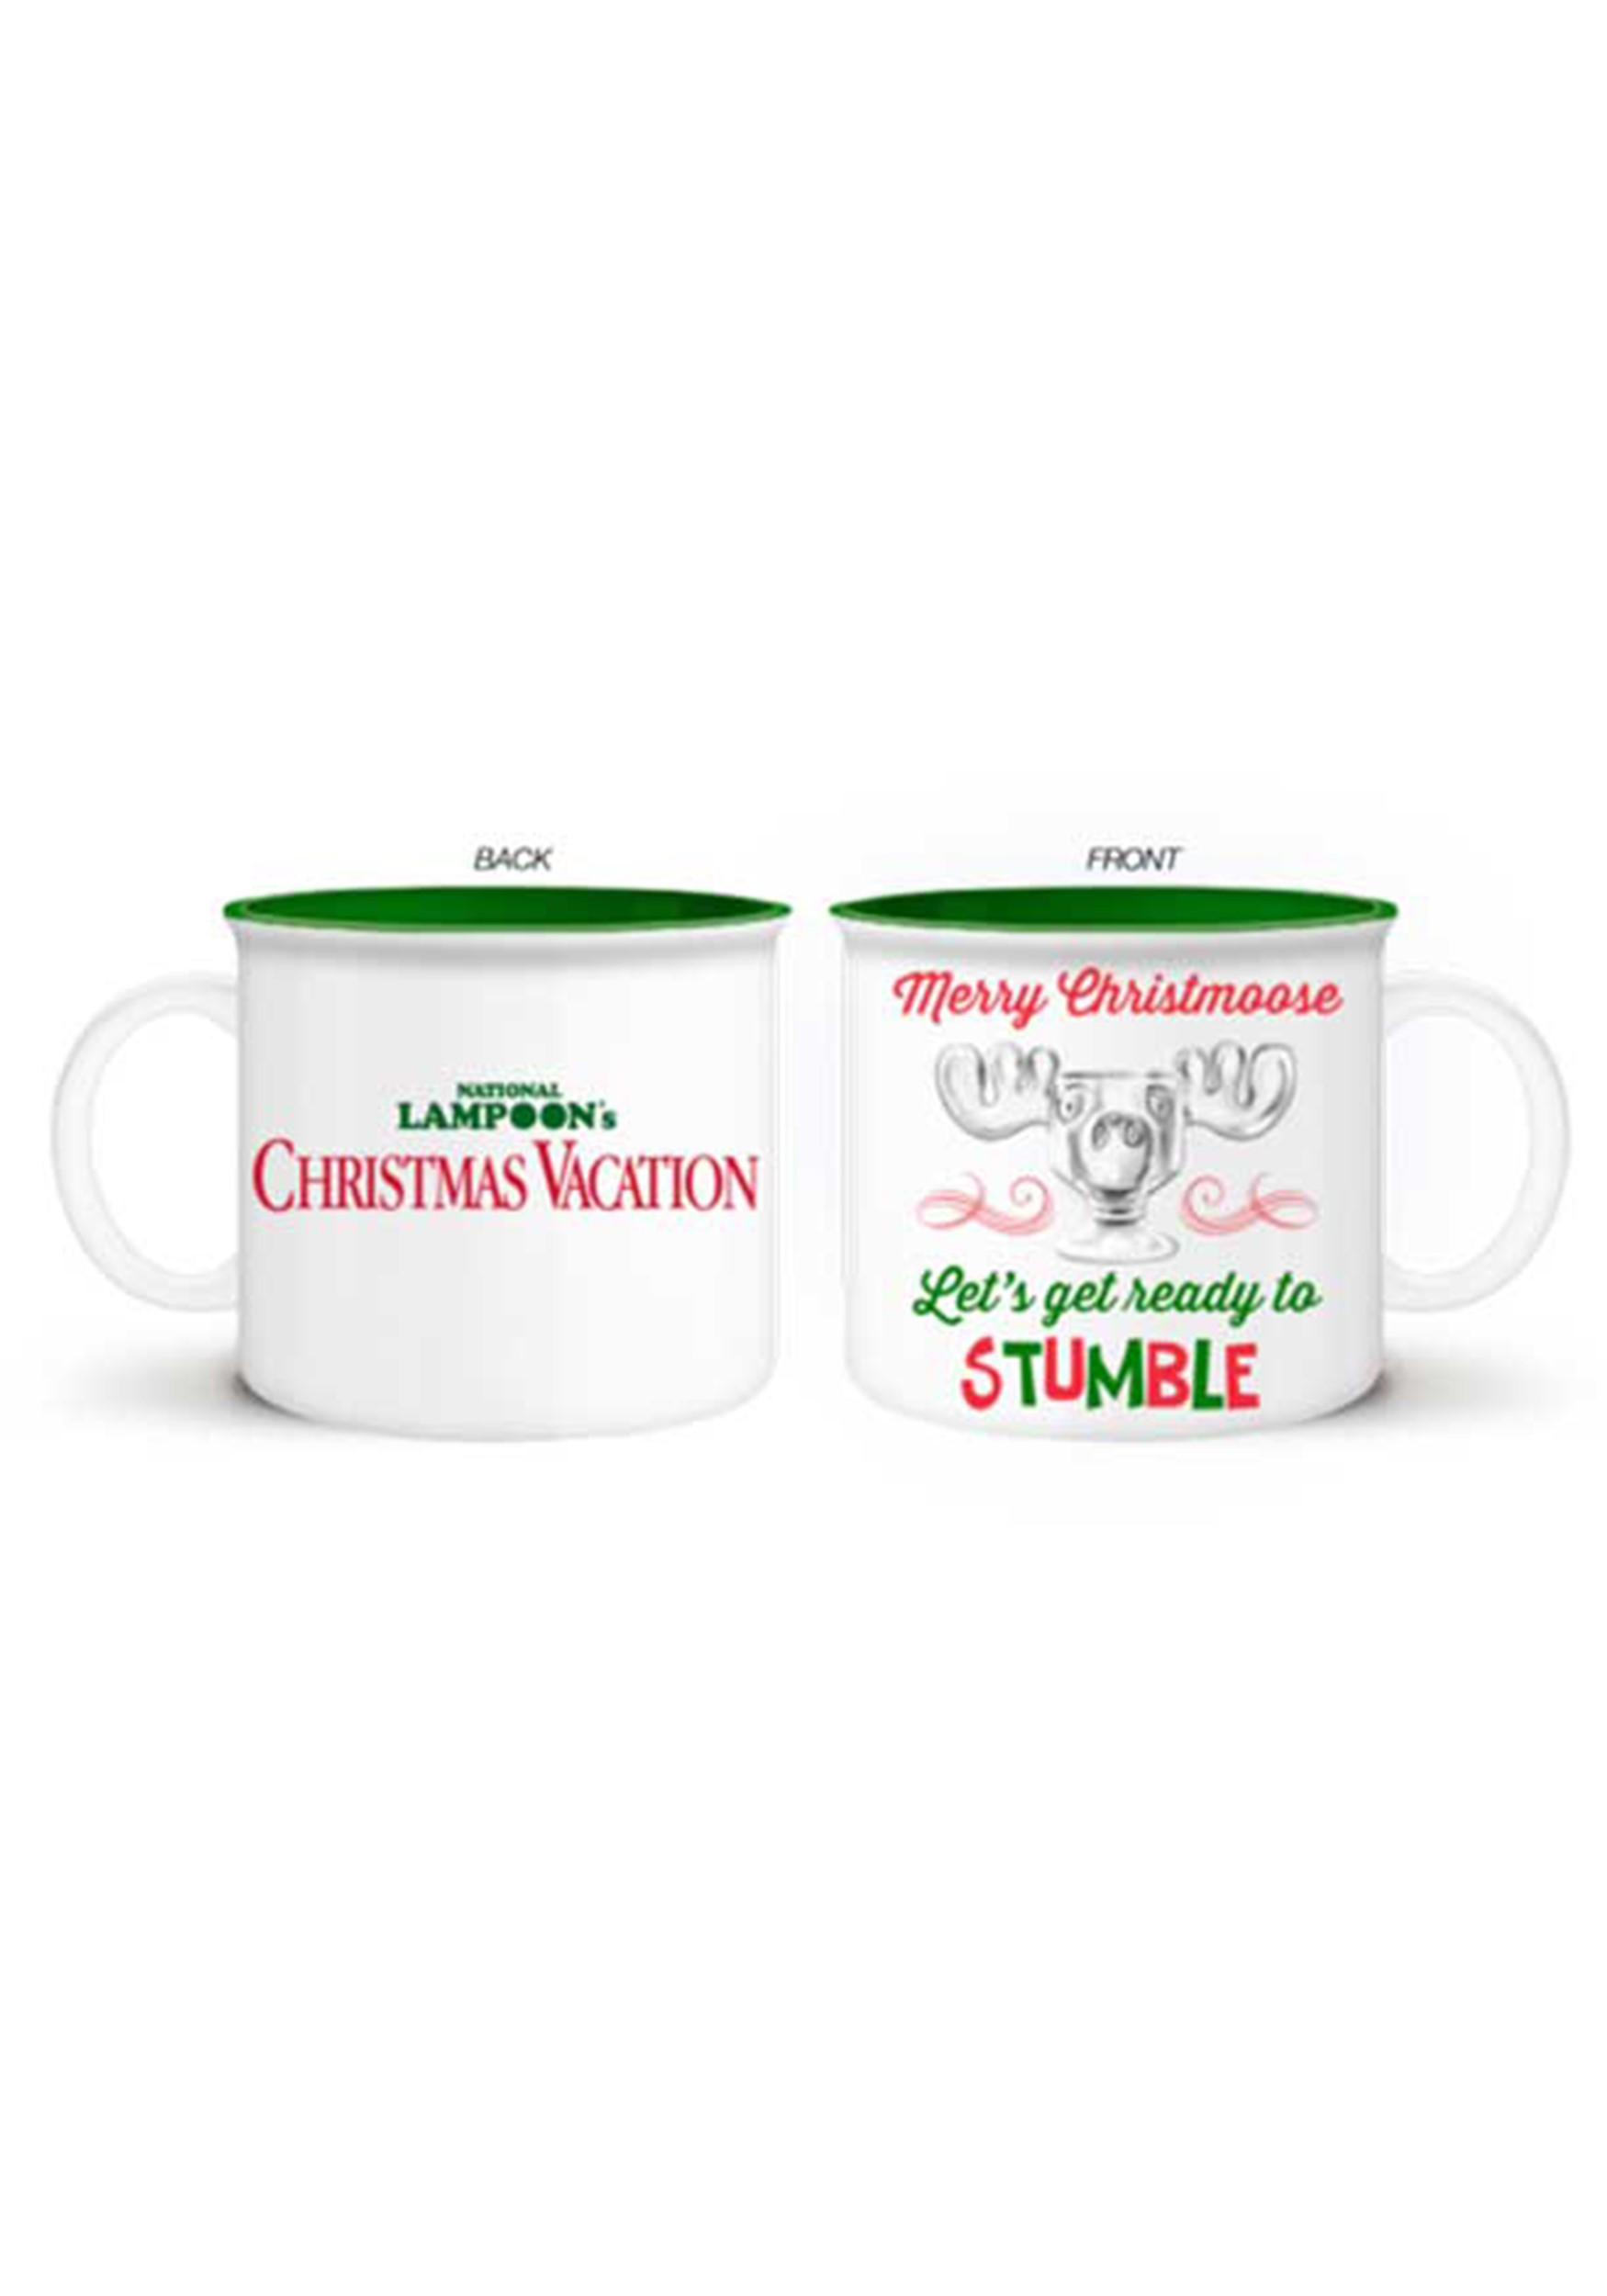 Jumbo Christmas Vacation Christmoose Stumble 20oz Mug